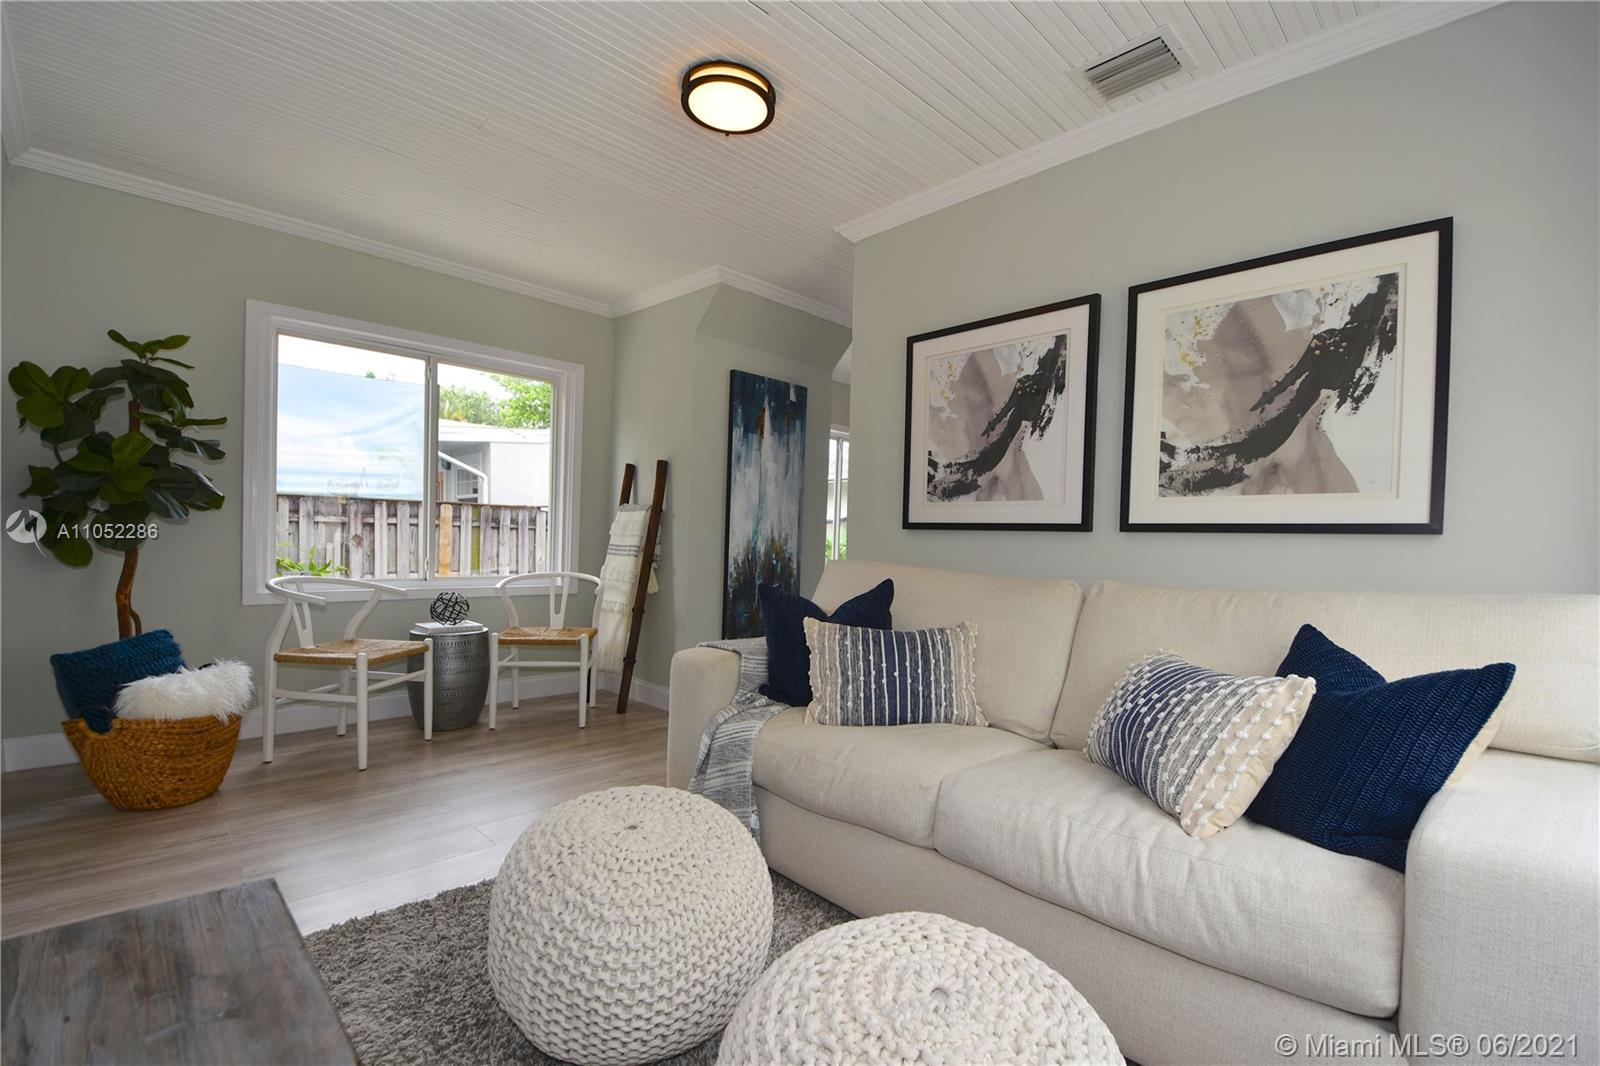 Welcome to The Hideaway. This charming 2 bed, 1 bath 608 sq ft bungalow style home nestled within Sa